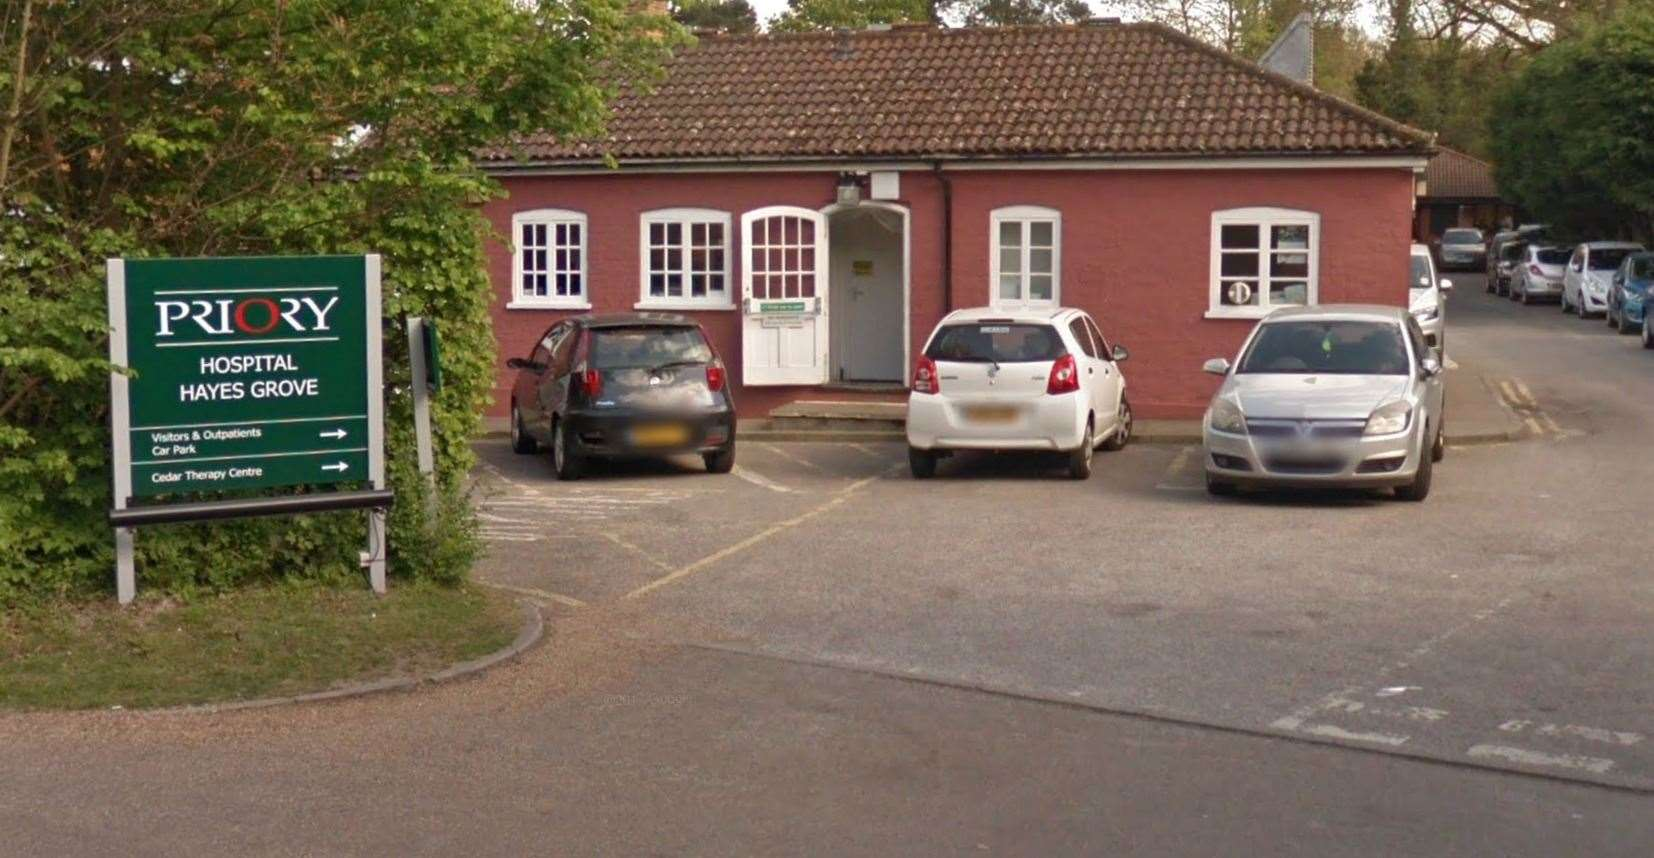 The Priory Hospital Hayes Grove, in Bromley, has been slammed by the CQC for not making improvements to its care for patients with learning difficulties. Picture: Google Street View